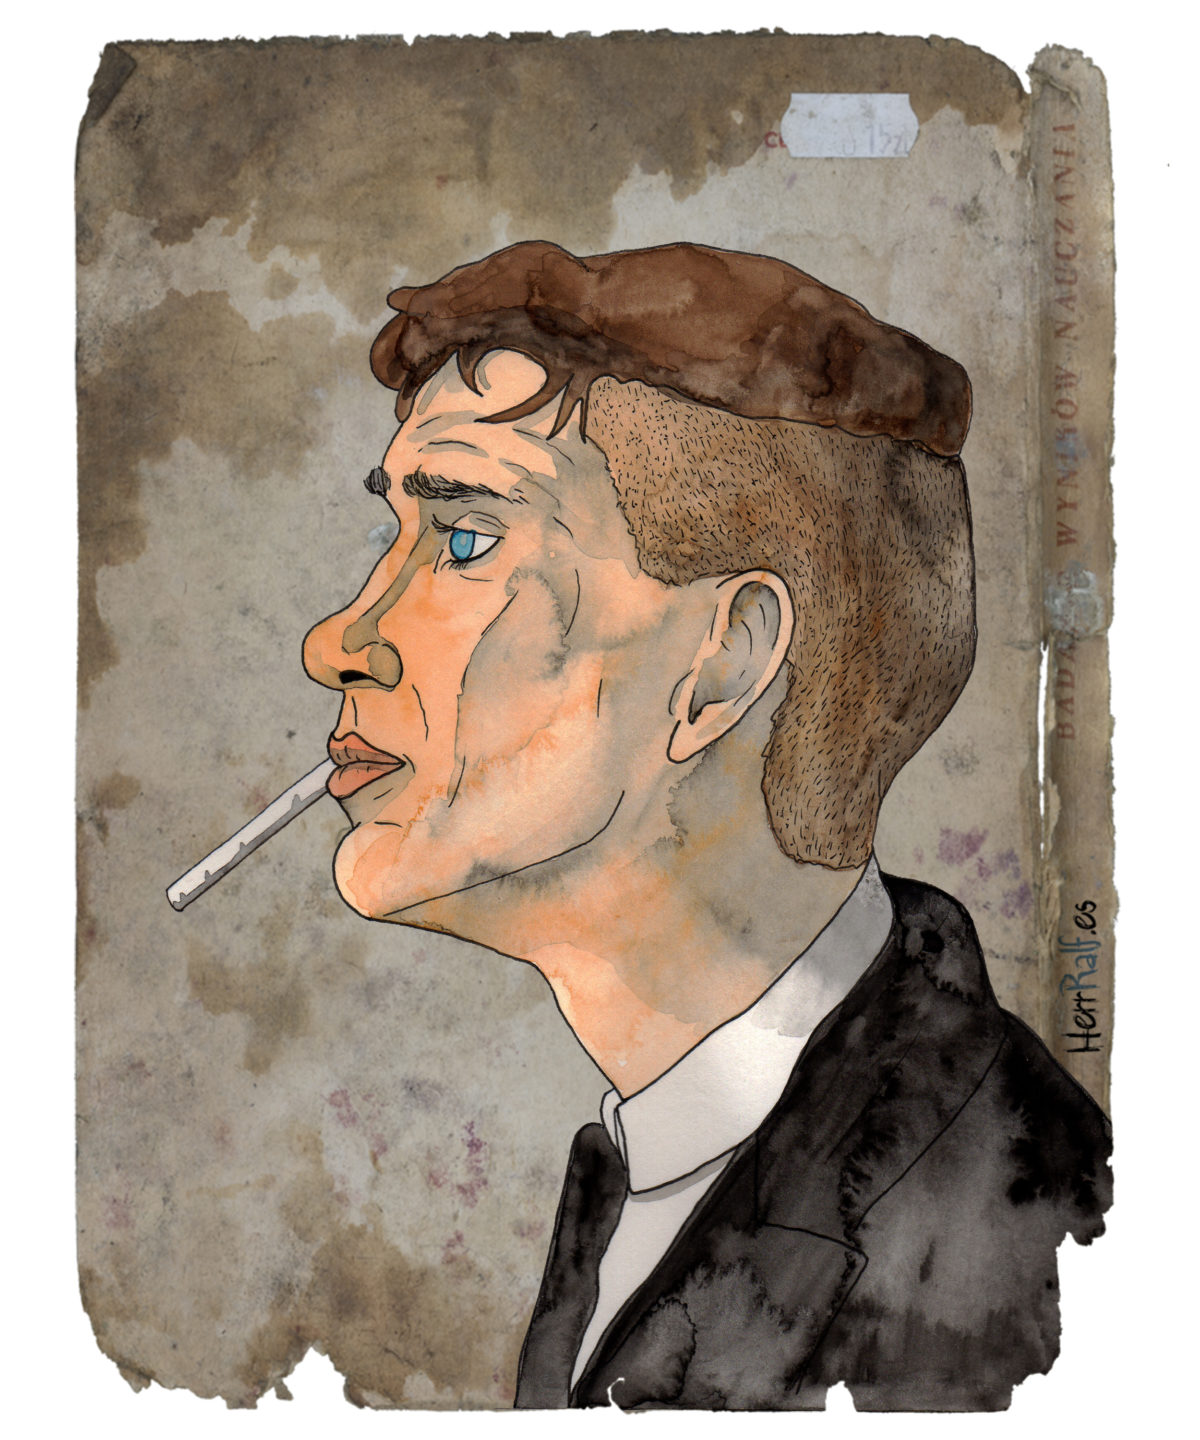 Thomas Shelby: Peaky Blinders illustrations